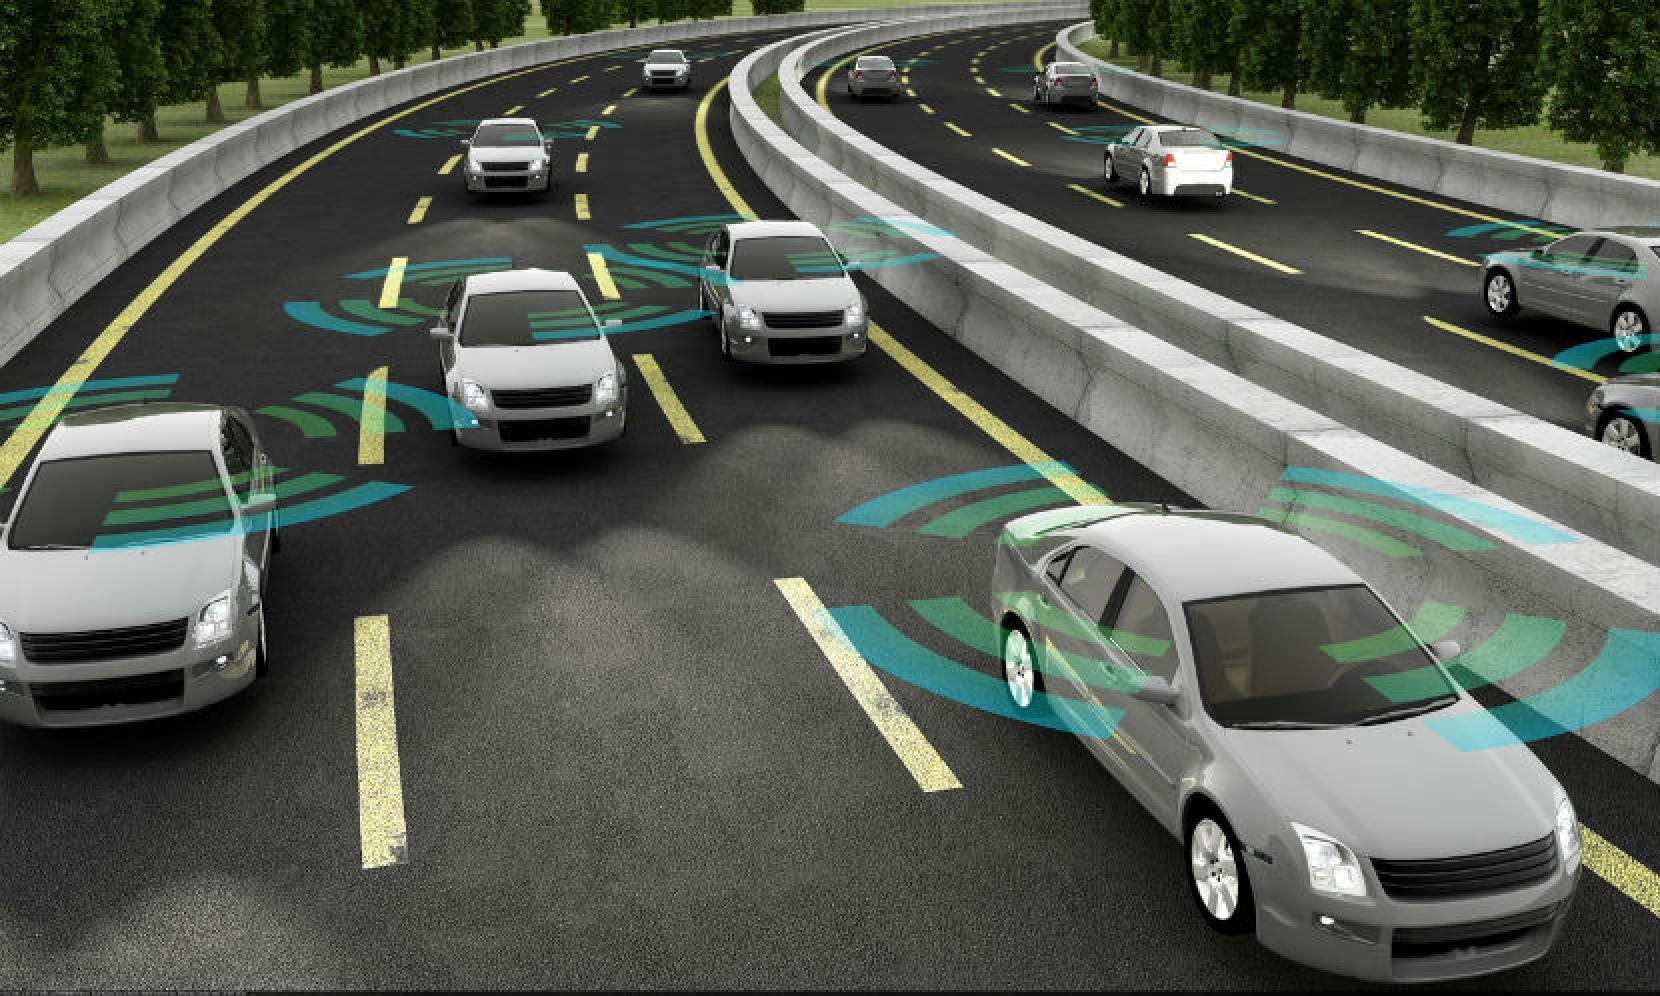 Germany drafting bill to commercialize driverless vehicles